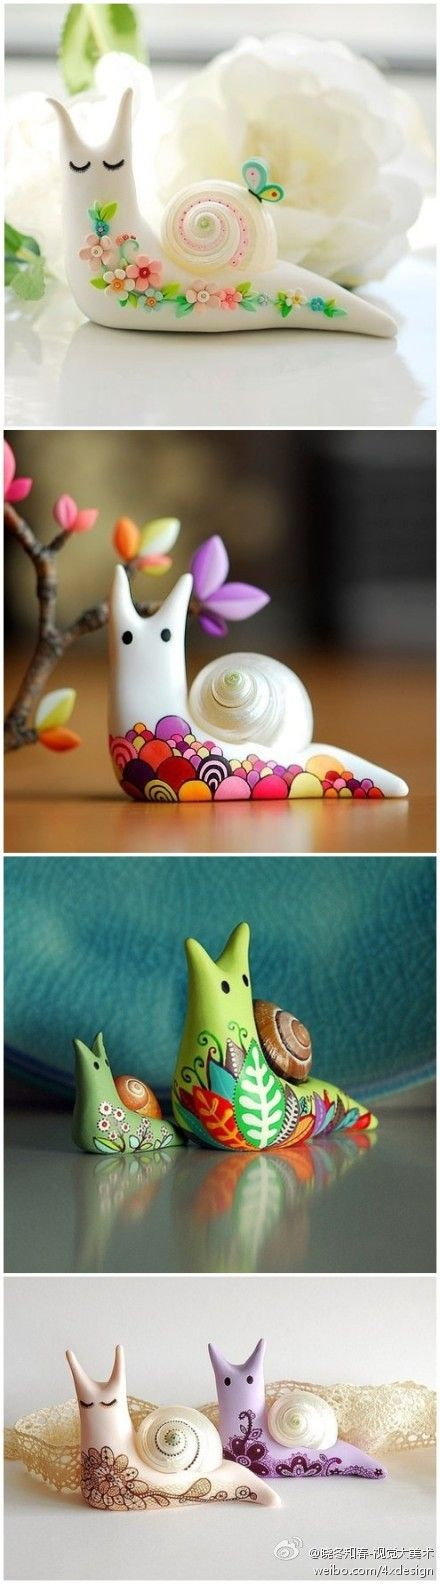 Afsaneh tajvidi pinterest air dry clay clay and snail gorgeous snails using air dry claymodel magic i really want to make these beauties solutioingenieria Choice Image